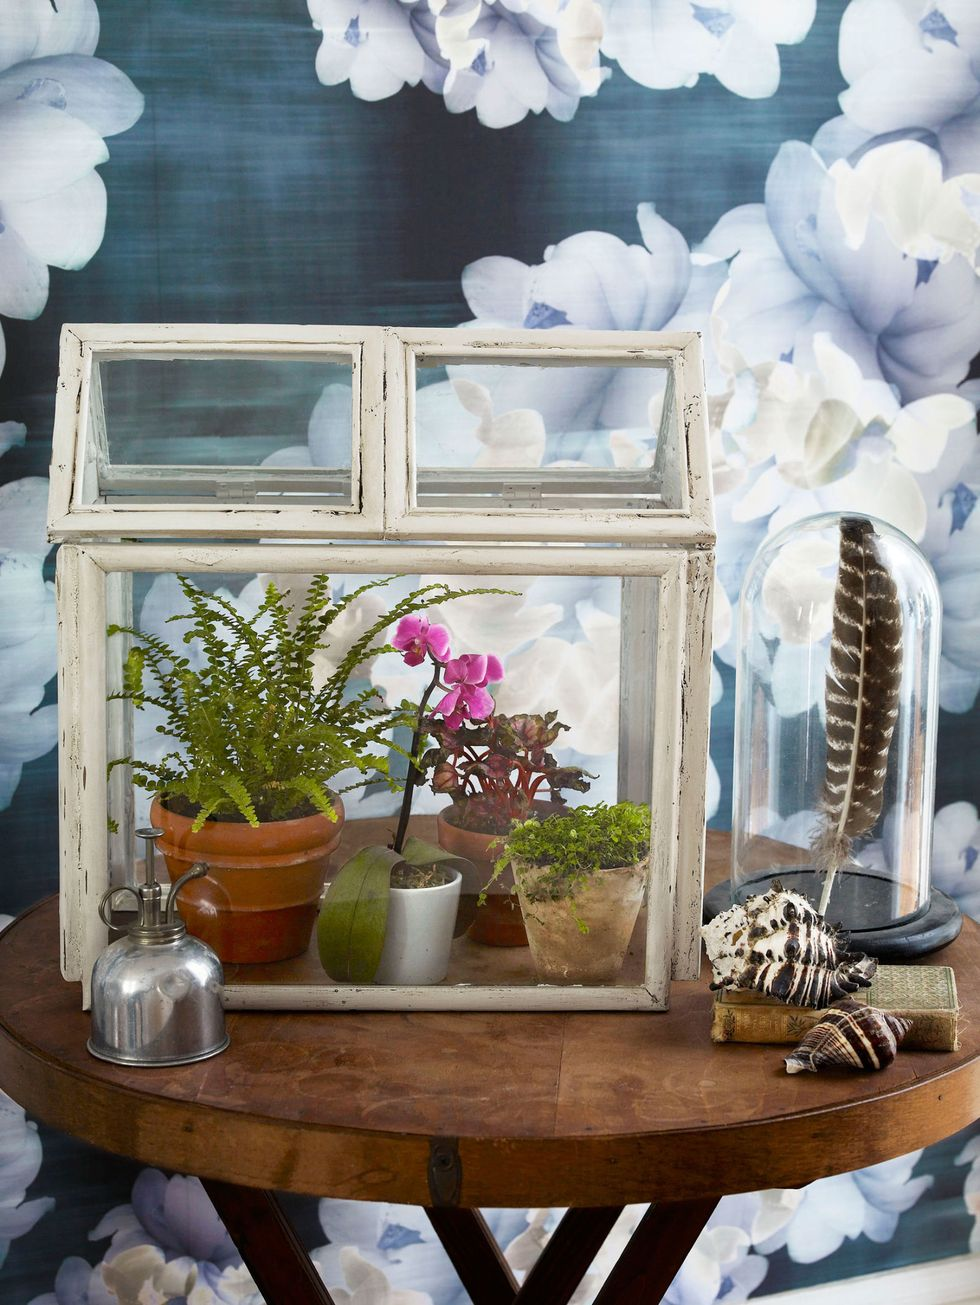 DIY Mini Greenhouse Using Picture Frames